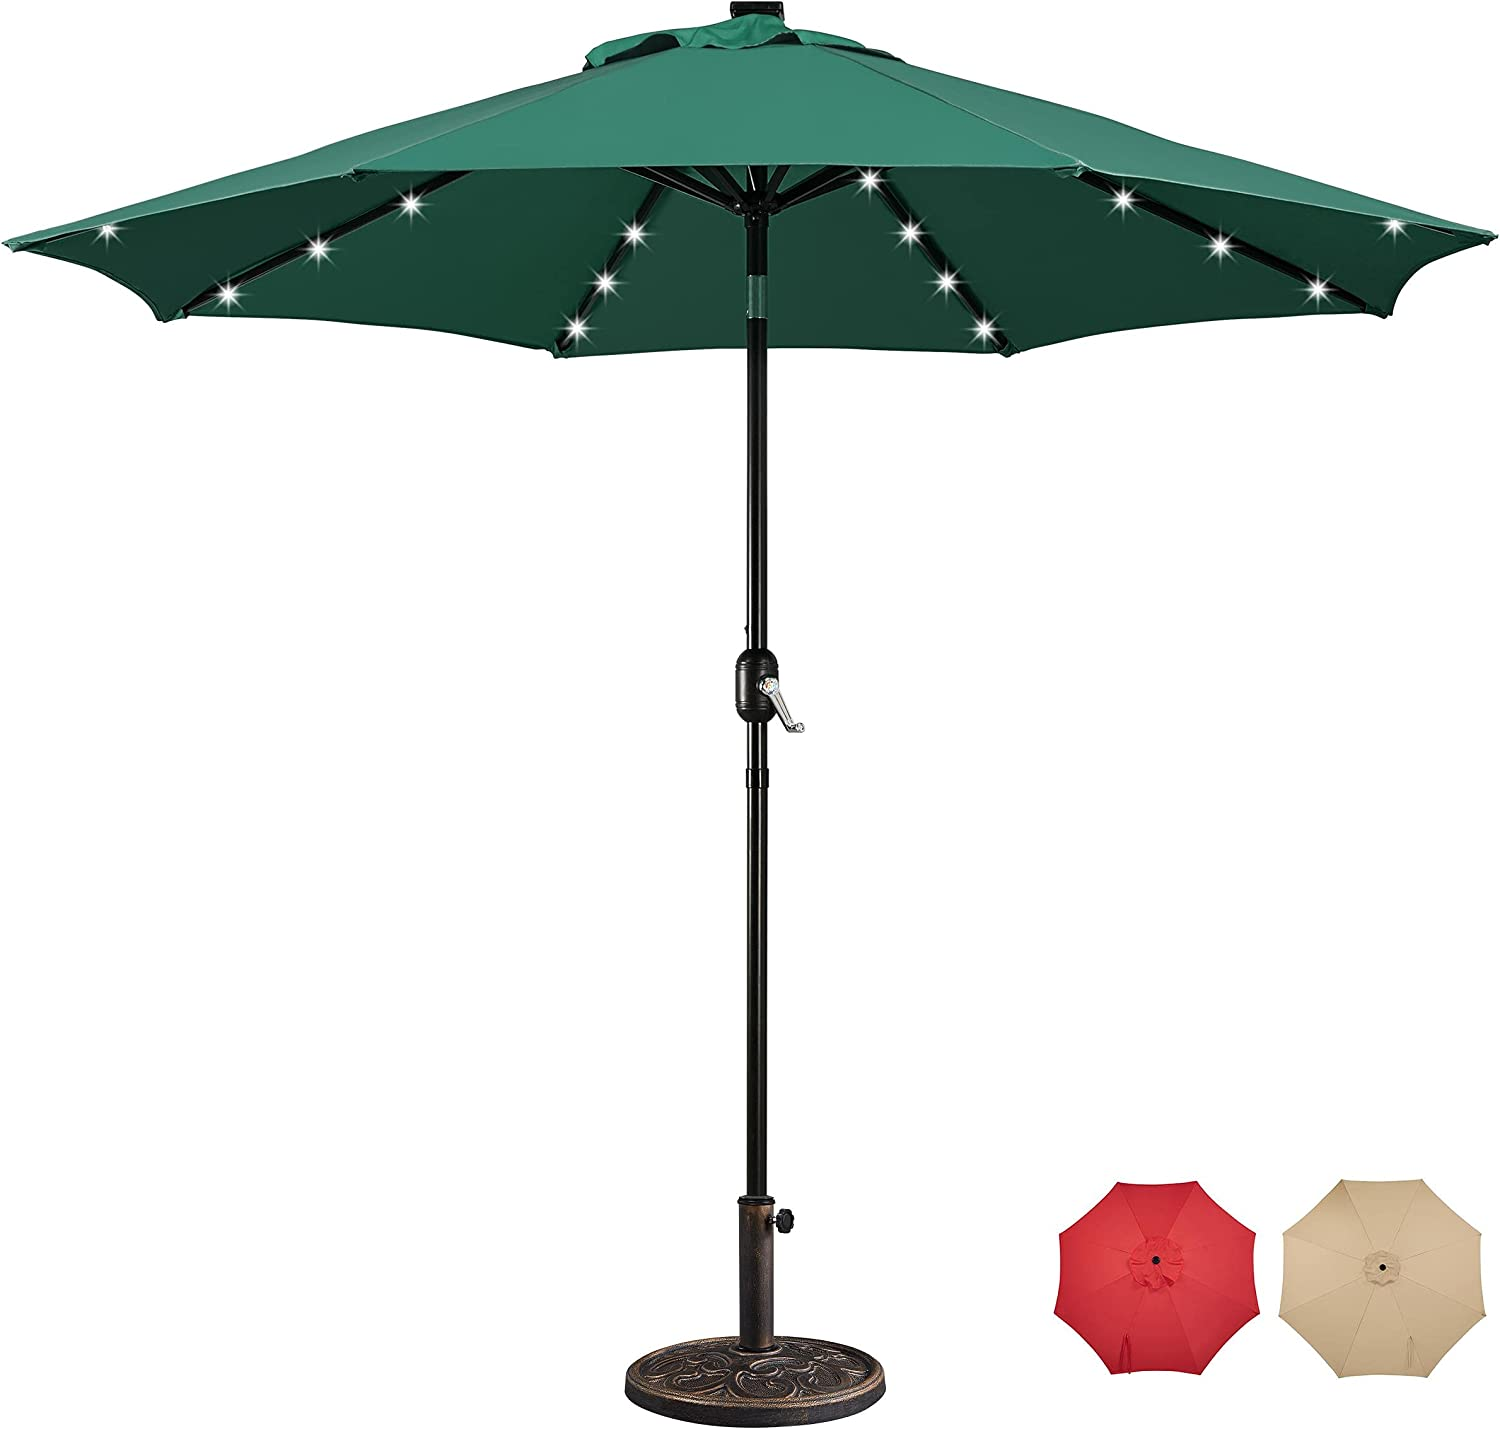 Dallas Mall Yaheetech 7.5 9FT LED Max 60% OFF Patio Market Base Umbrella S with